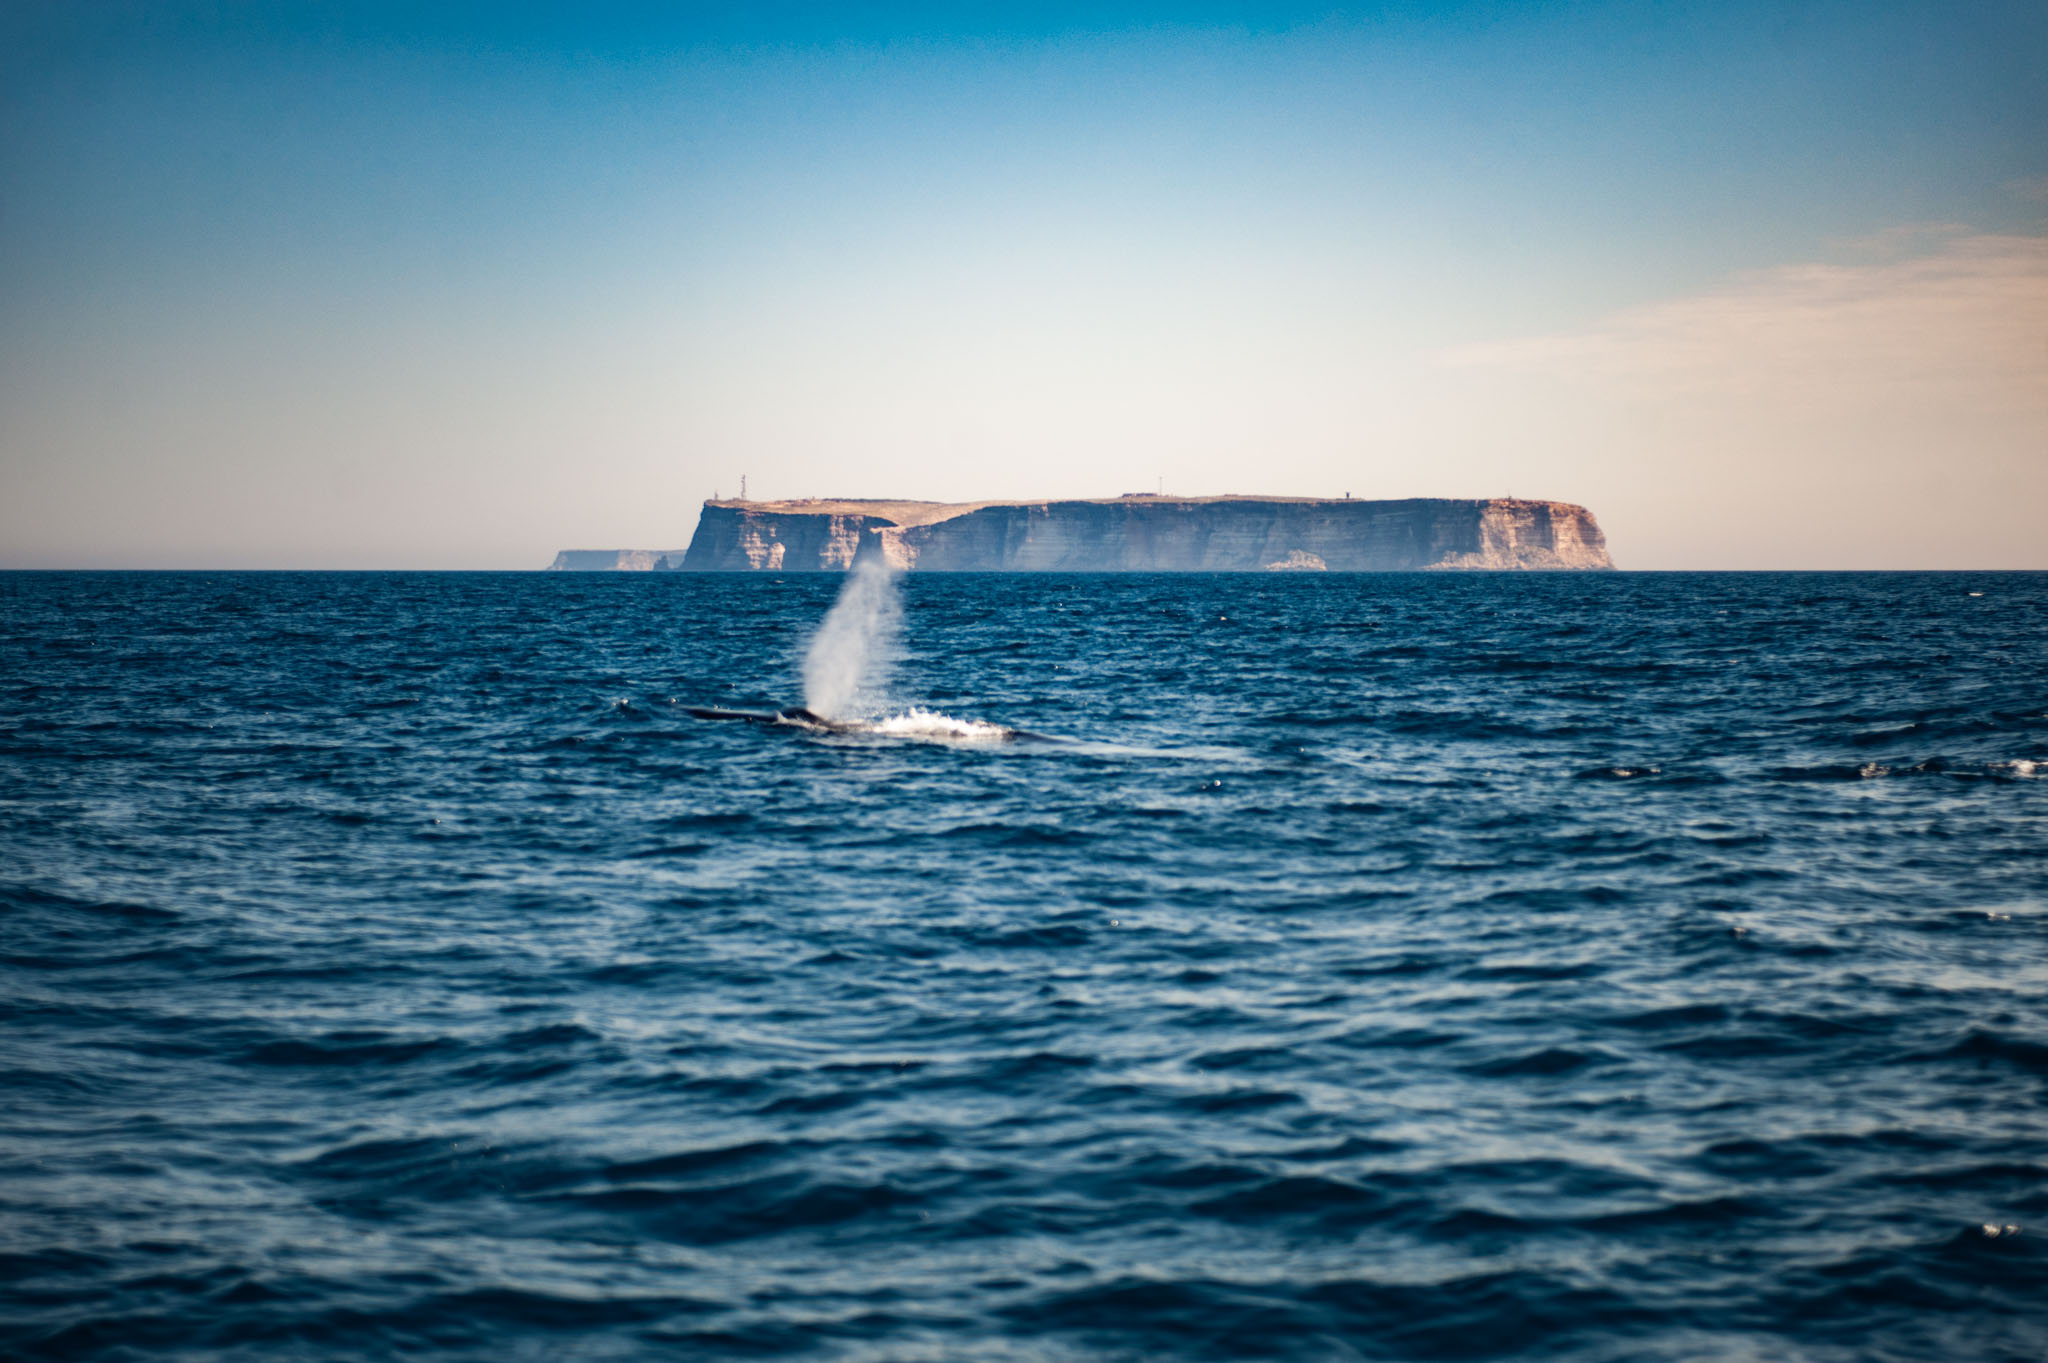 A Fin Whale in front of Lampedusa Island. (Lampedusa, 2017/